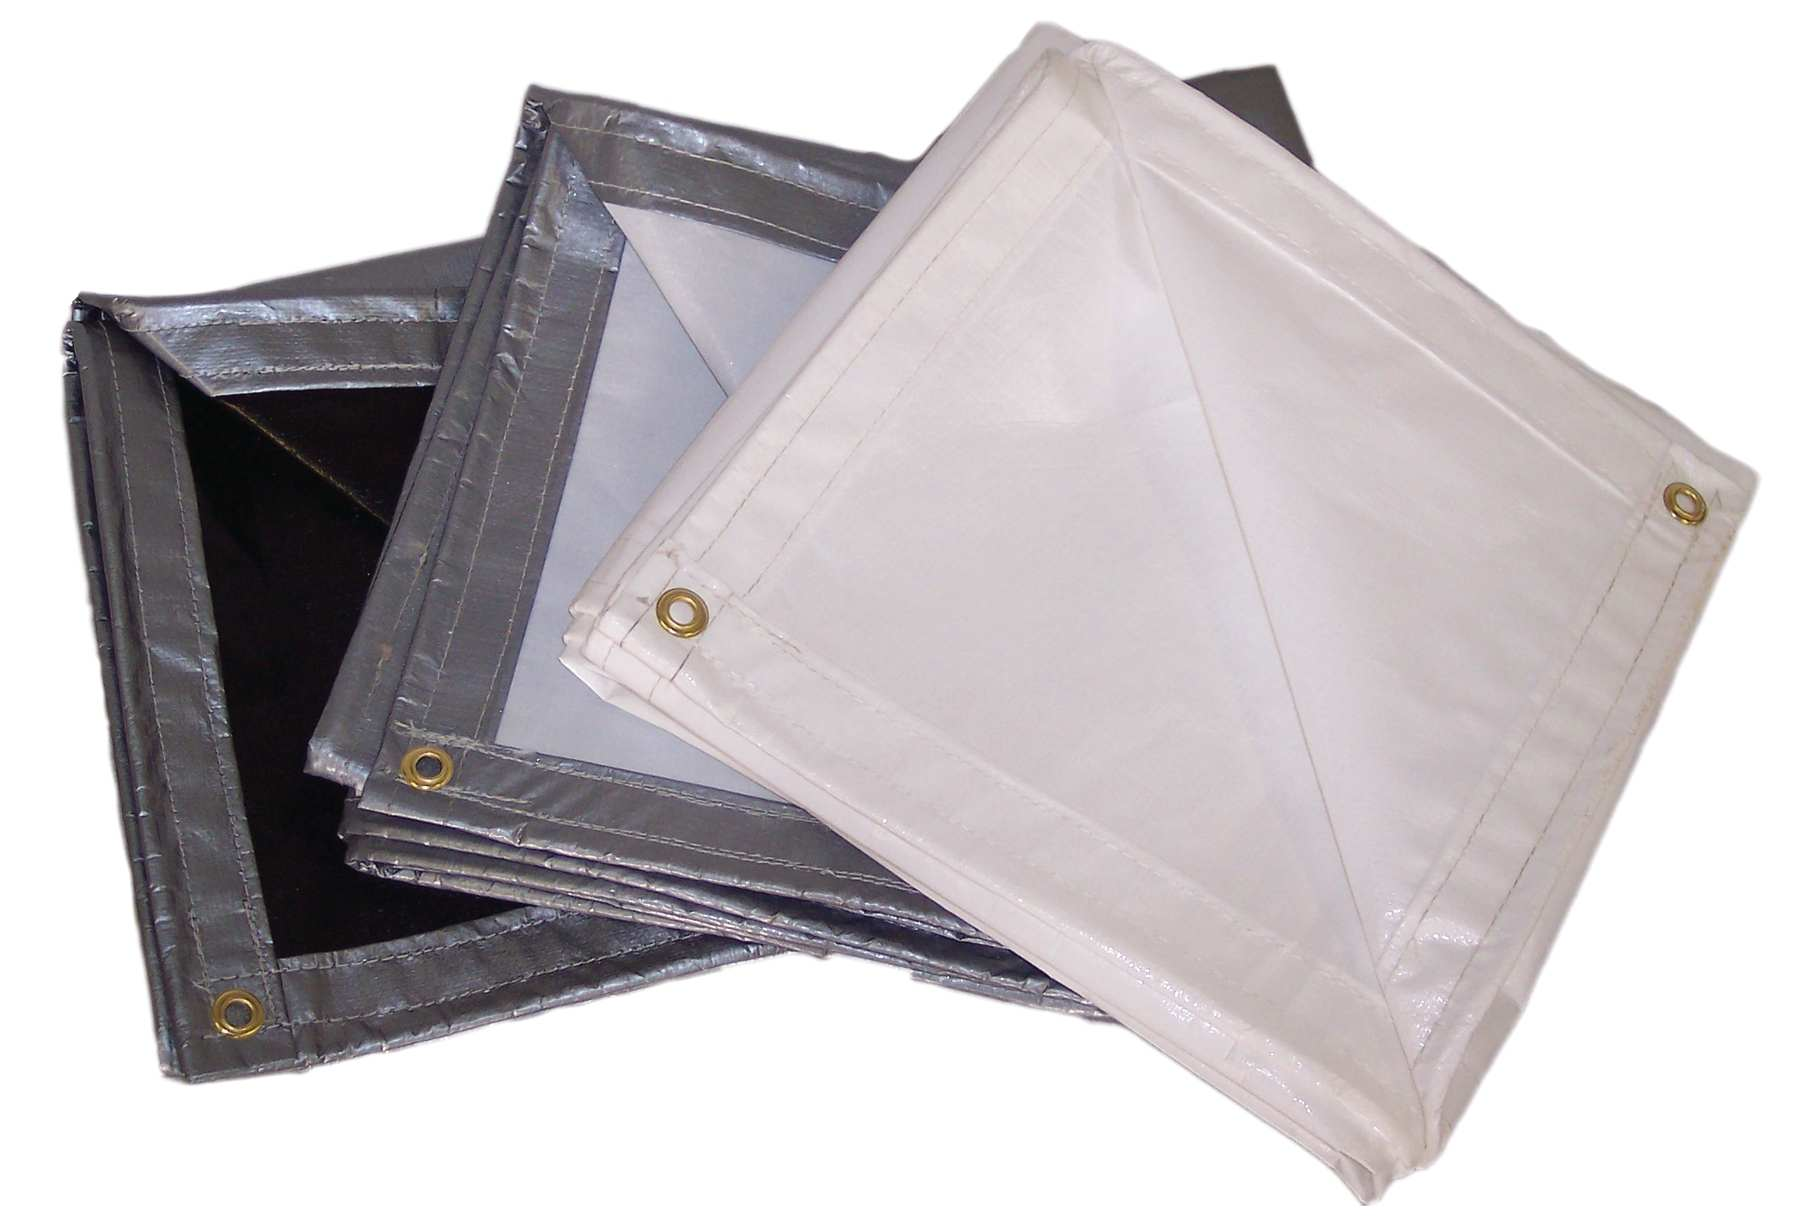 Heavy Duty Reinforced Polyethylene Tarps – 12 mil., 7 oz./sq. Yd.; Size (ft.) 24 x 30